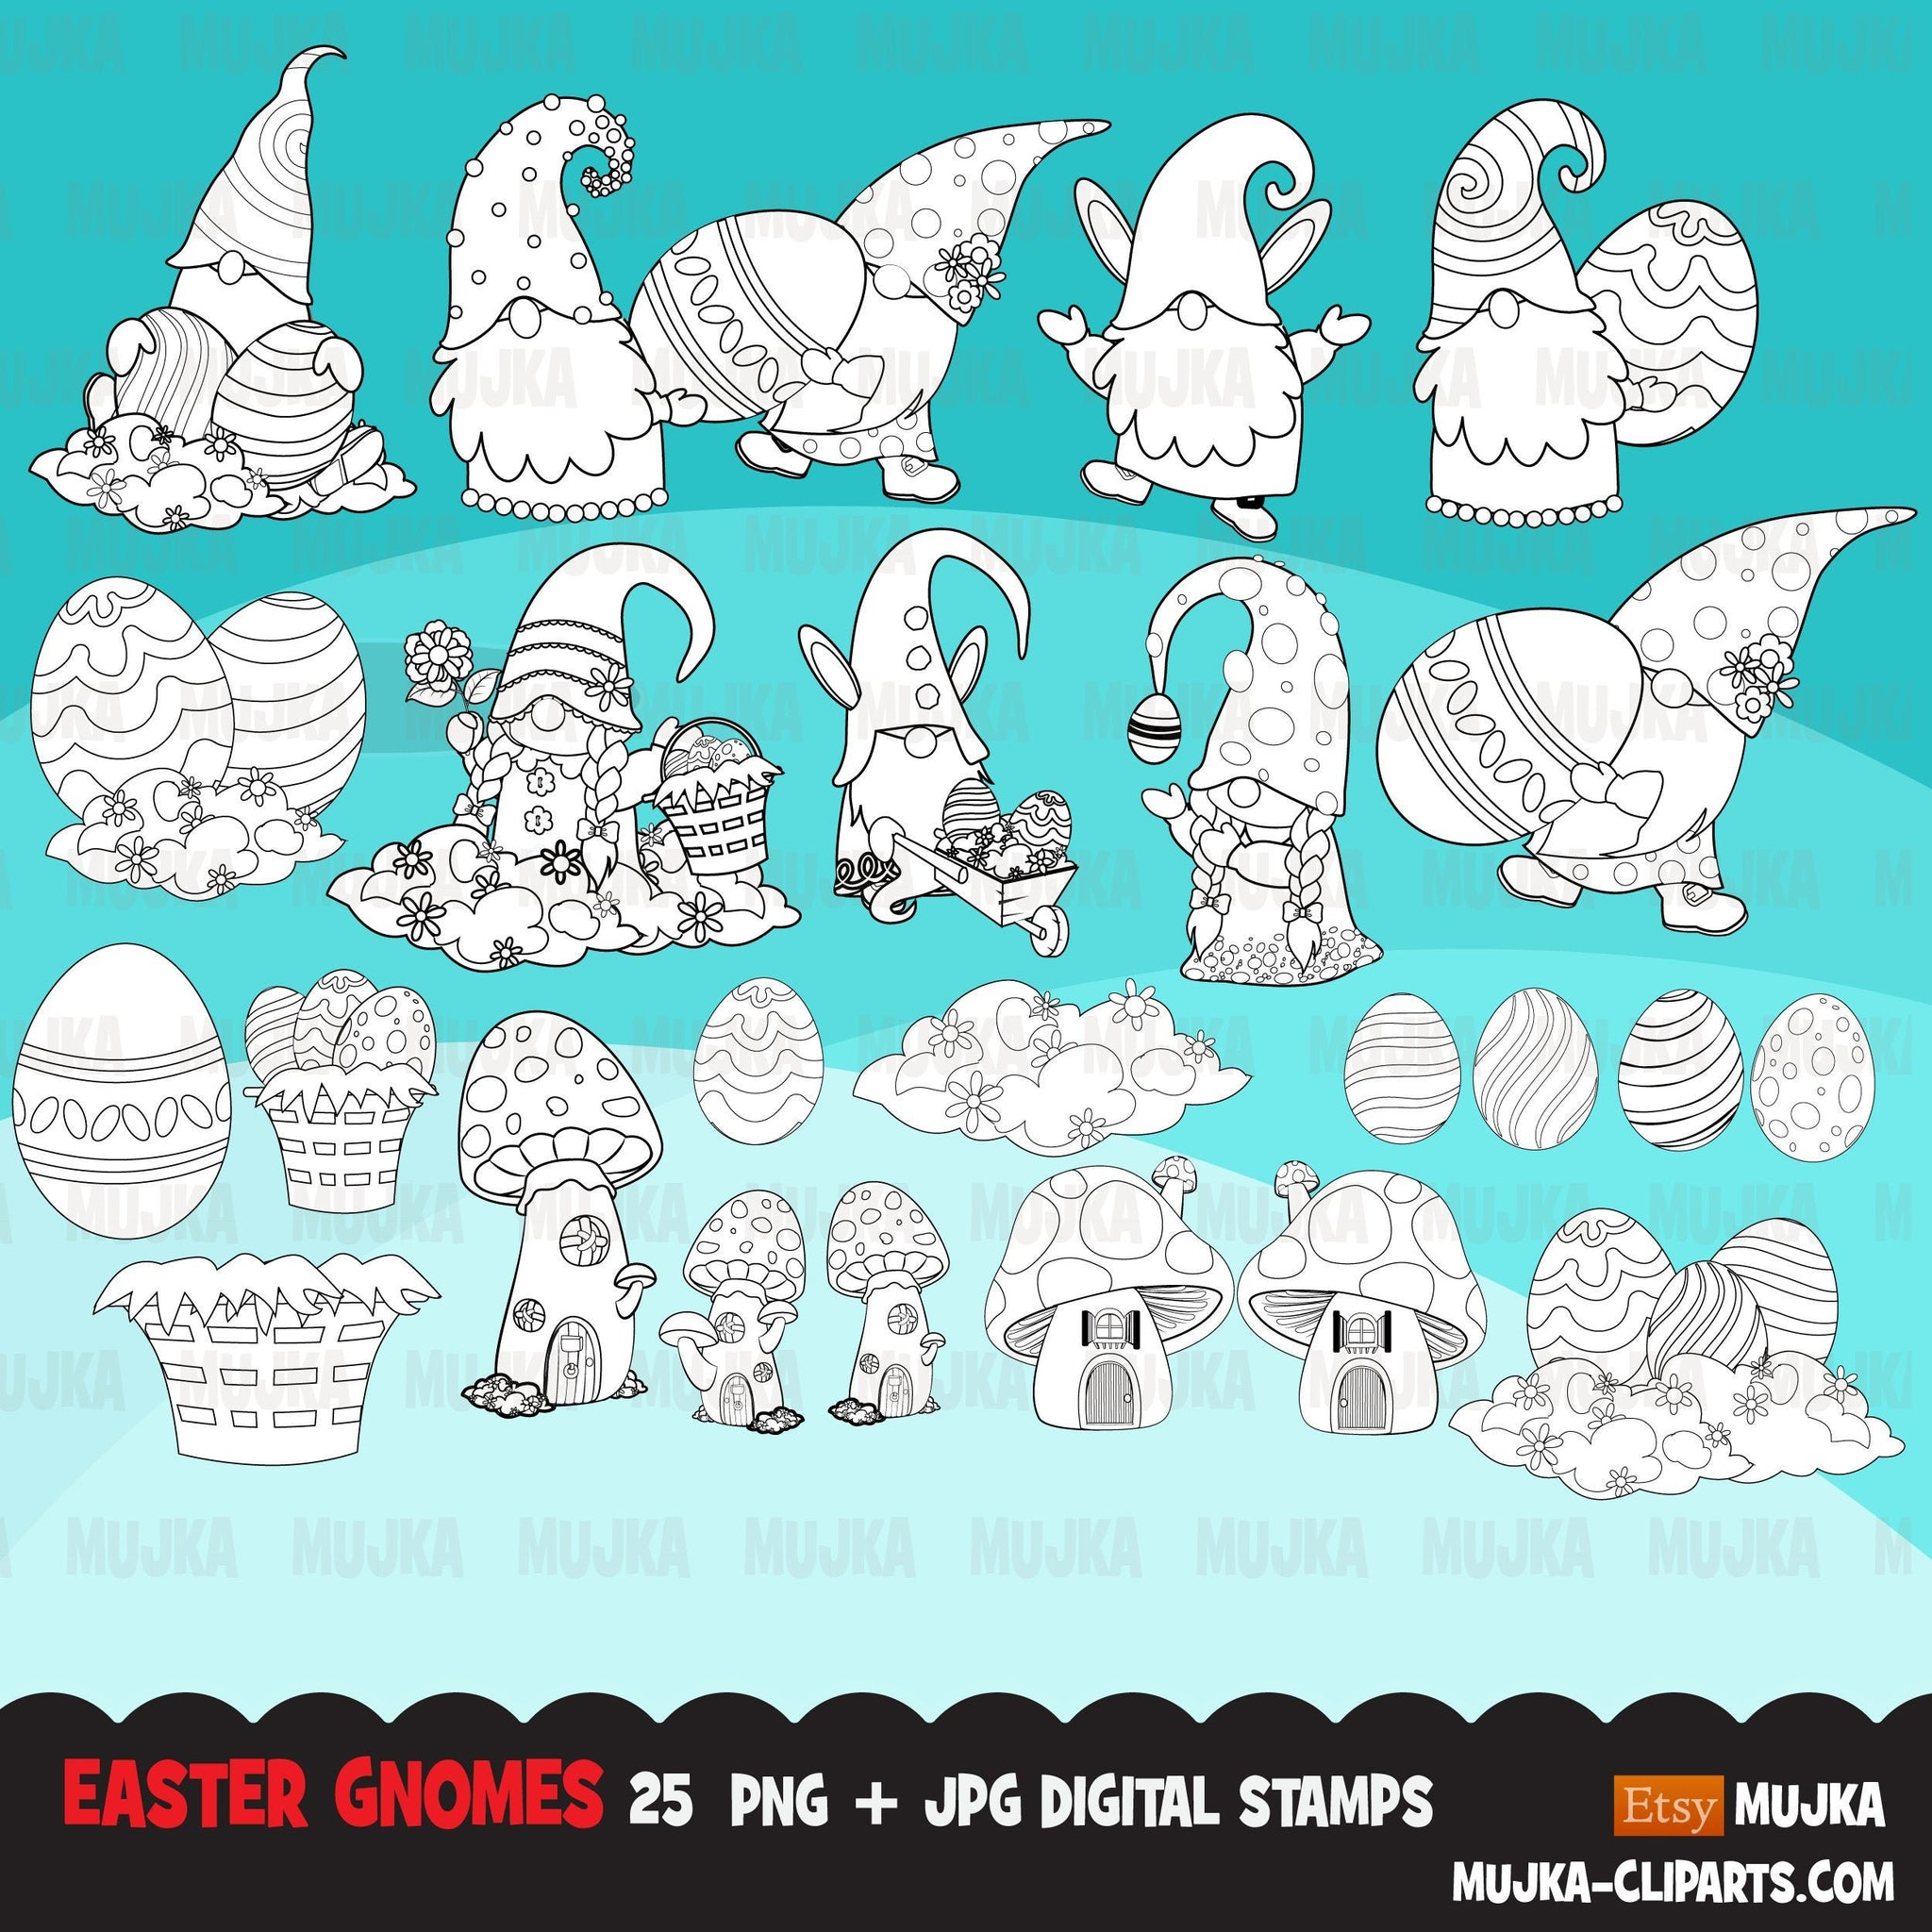 Easter gnomes Digital stamps, Mushroom house, easter eggs, Scandinavian graphics, illustration, coloring book art outline clipart